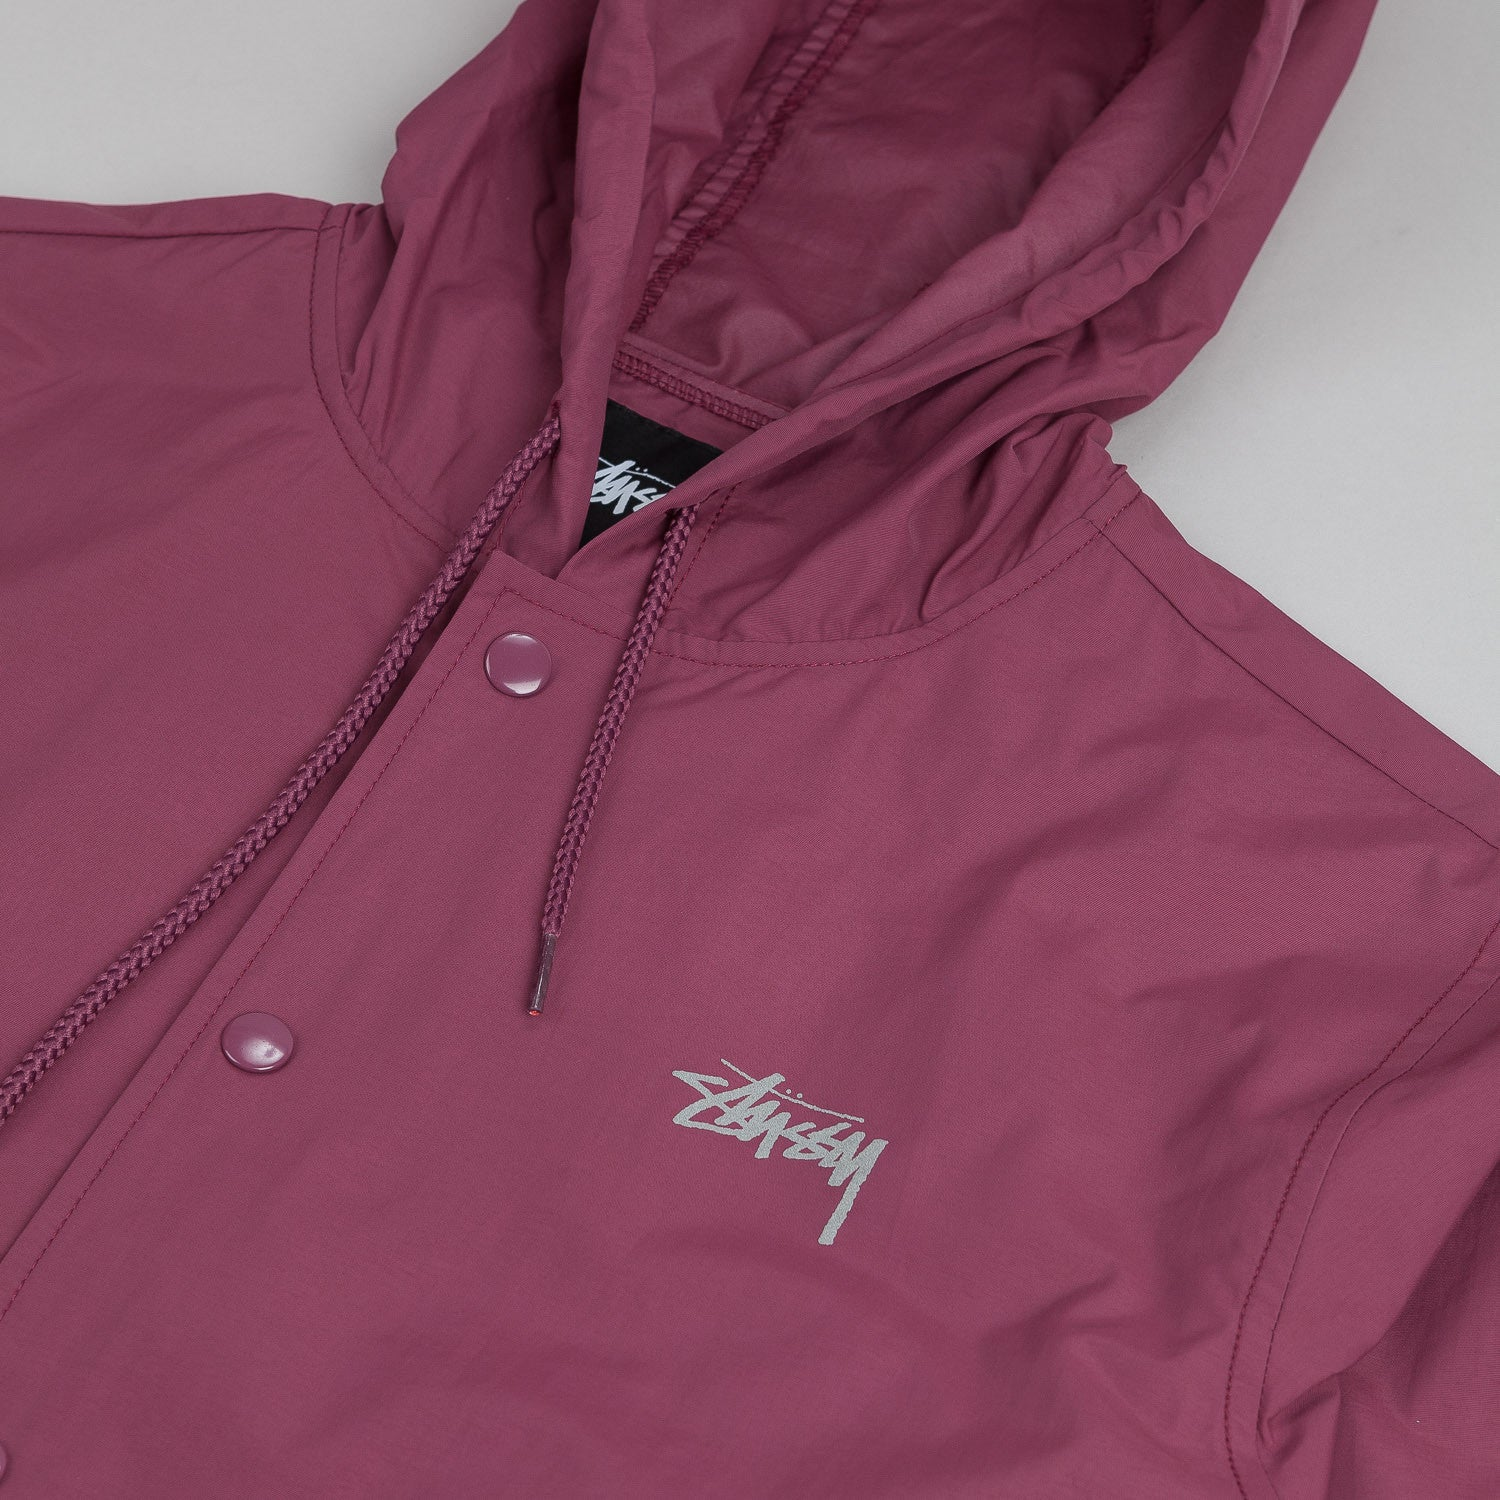 Stussy Hooded Long Jacket - Burgundy